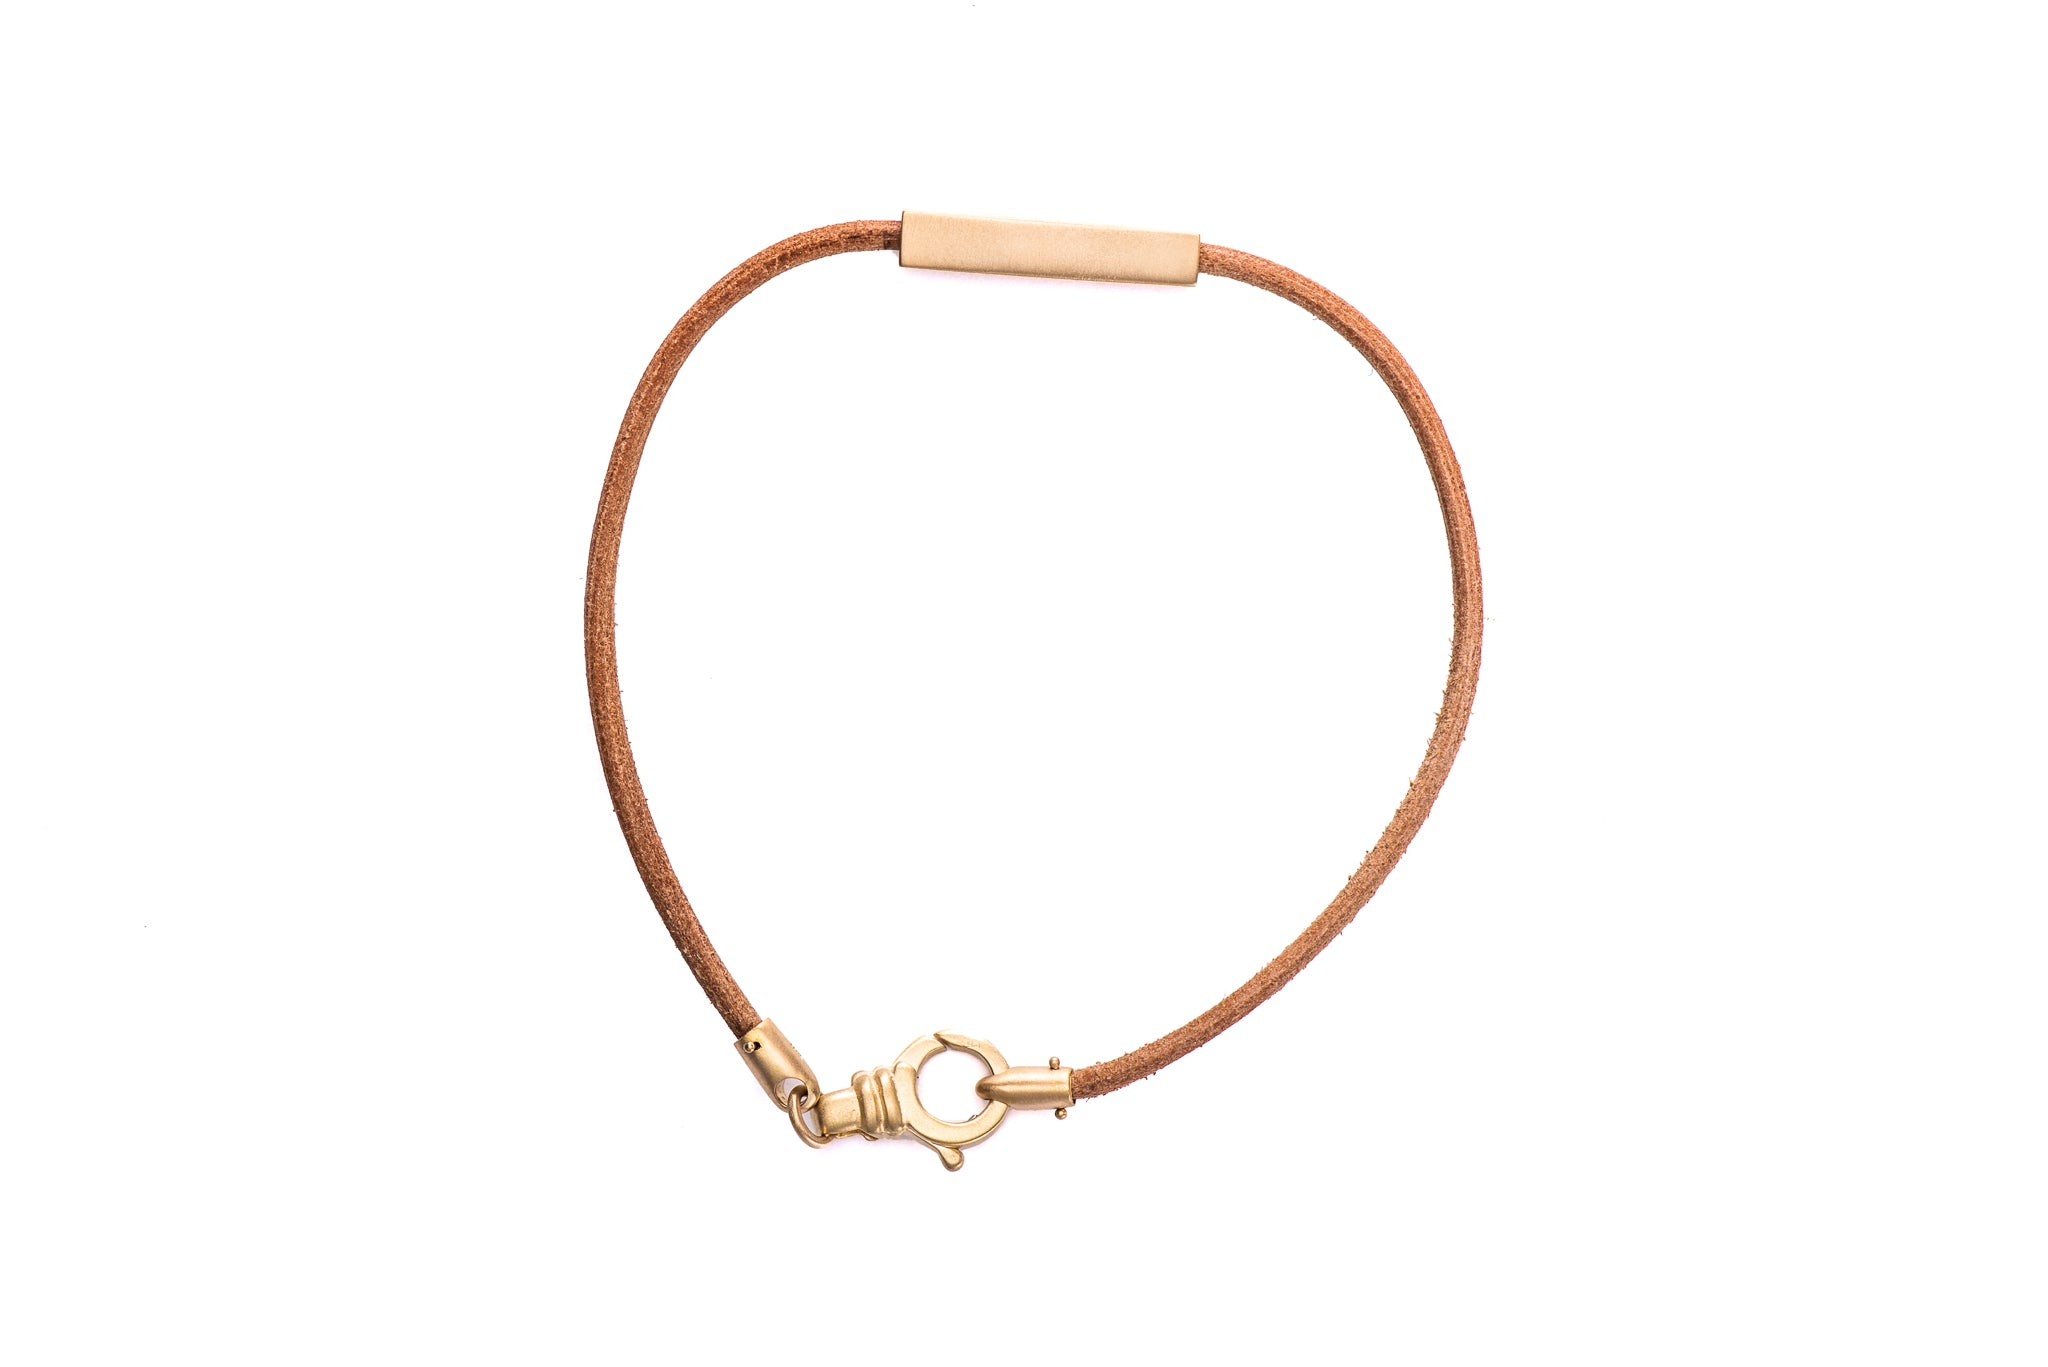 Single Gold Bar / Leather Bracelet w/ 18K Yellow Gold Lock